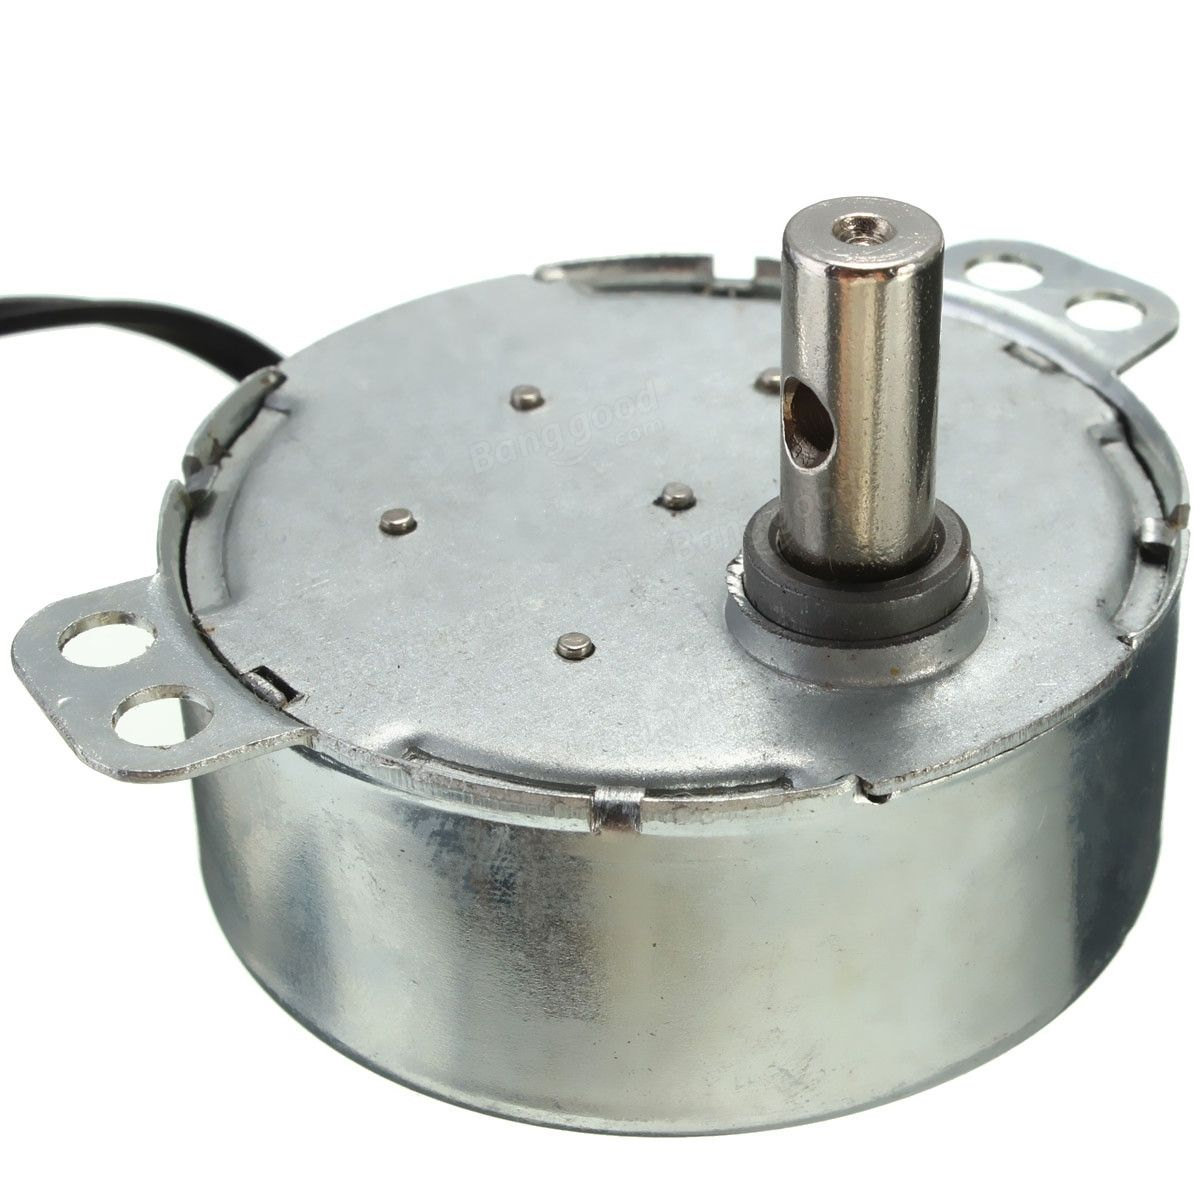 Microwave Oven Working Mechanism: 8-10 RPM Turntable Synchronous Motor For Microwave Oven AC